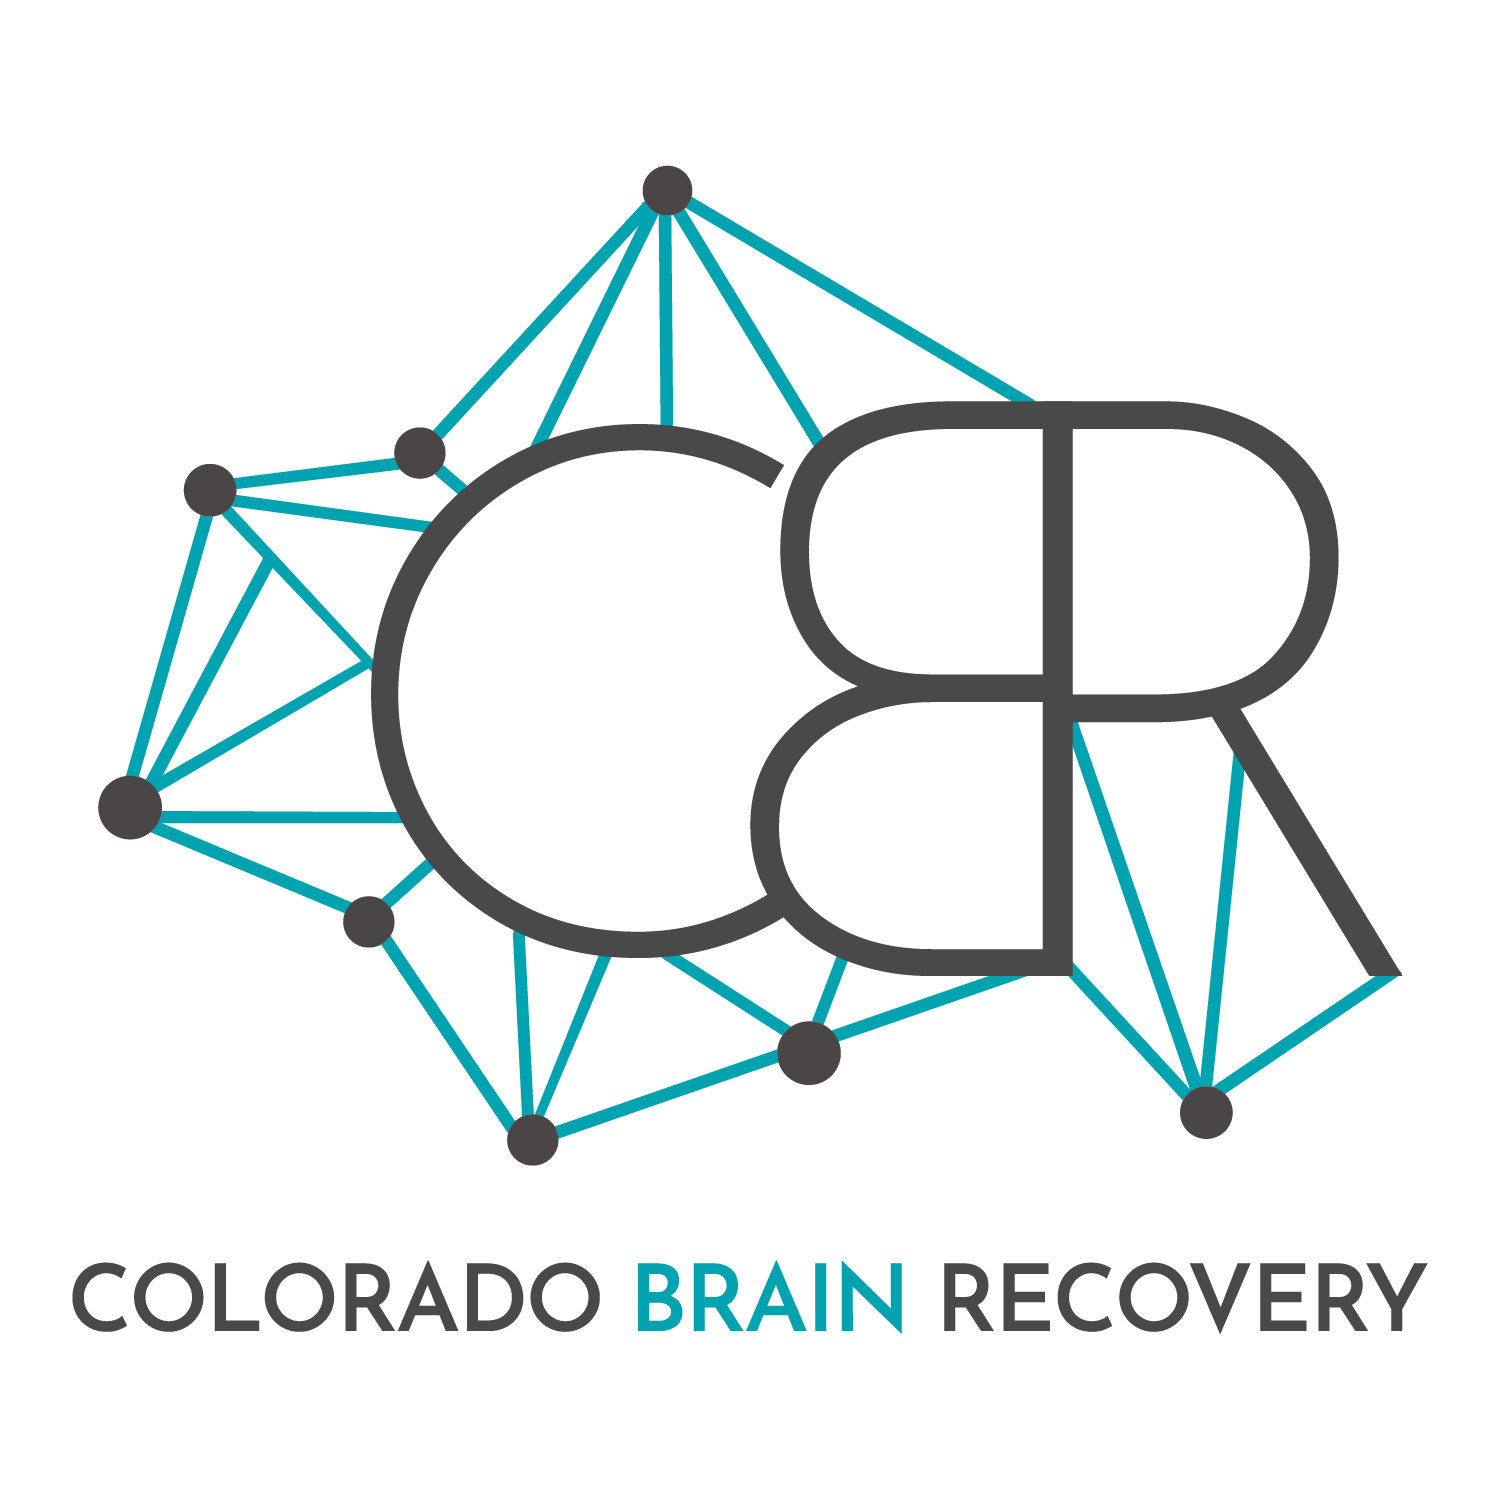 Colorado Brain Recovery